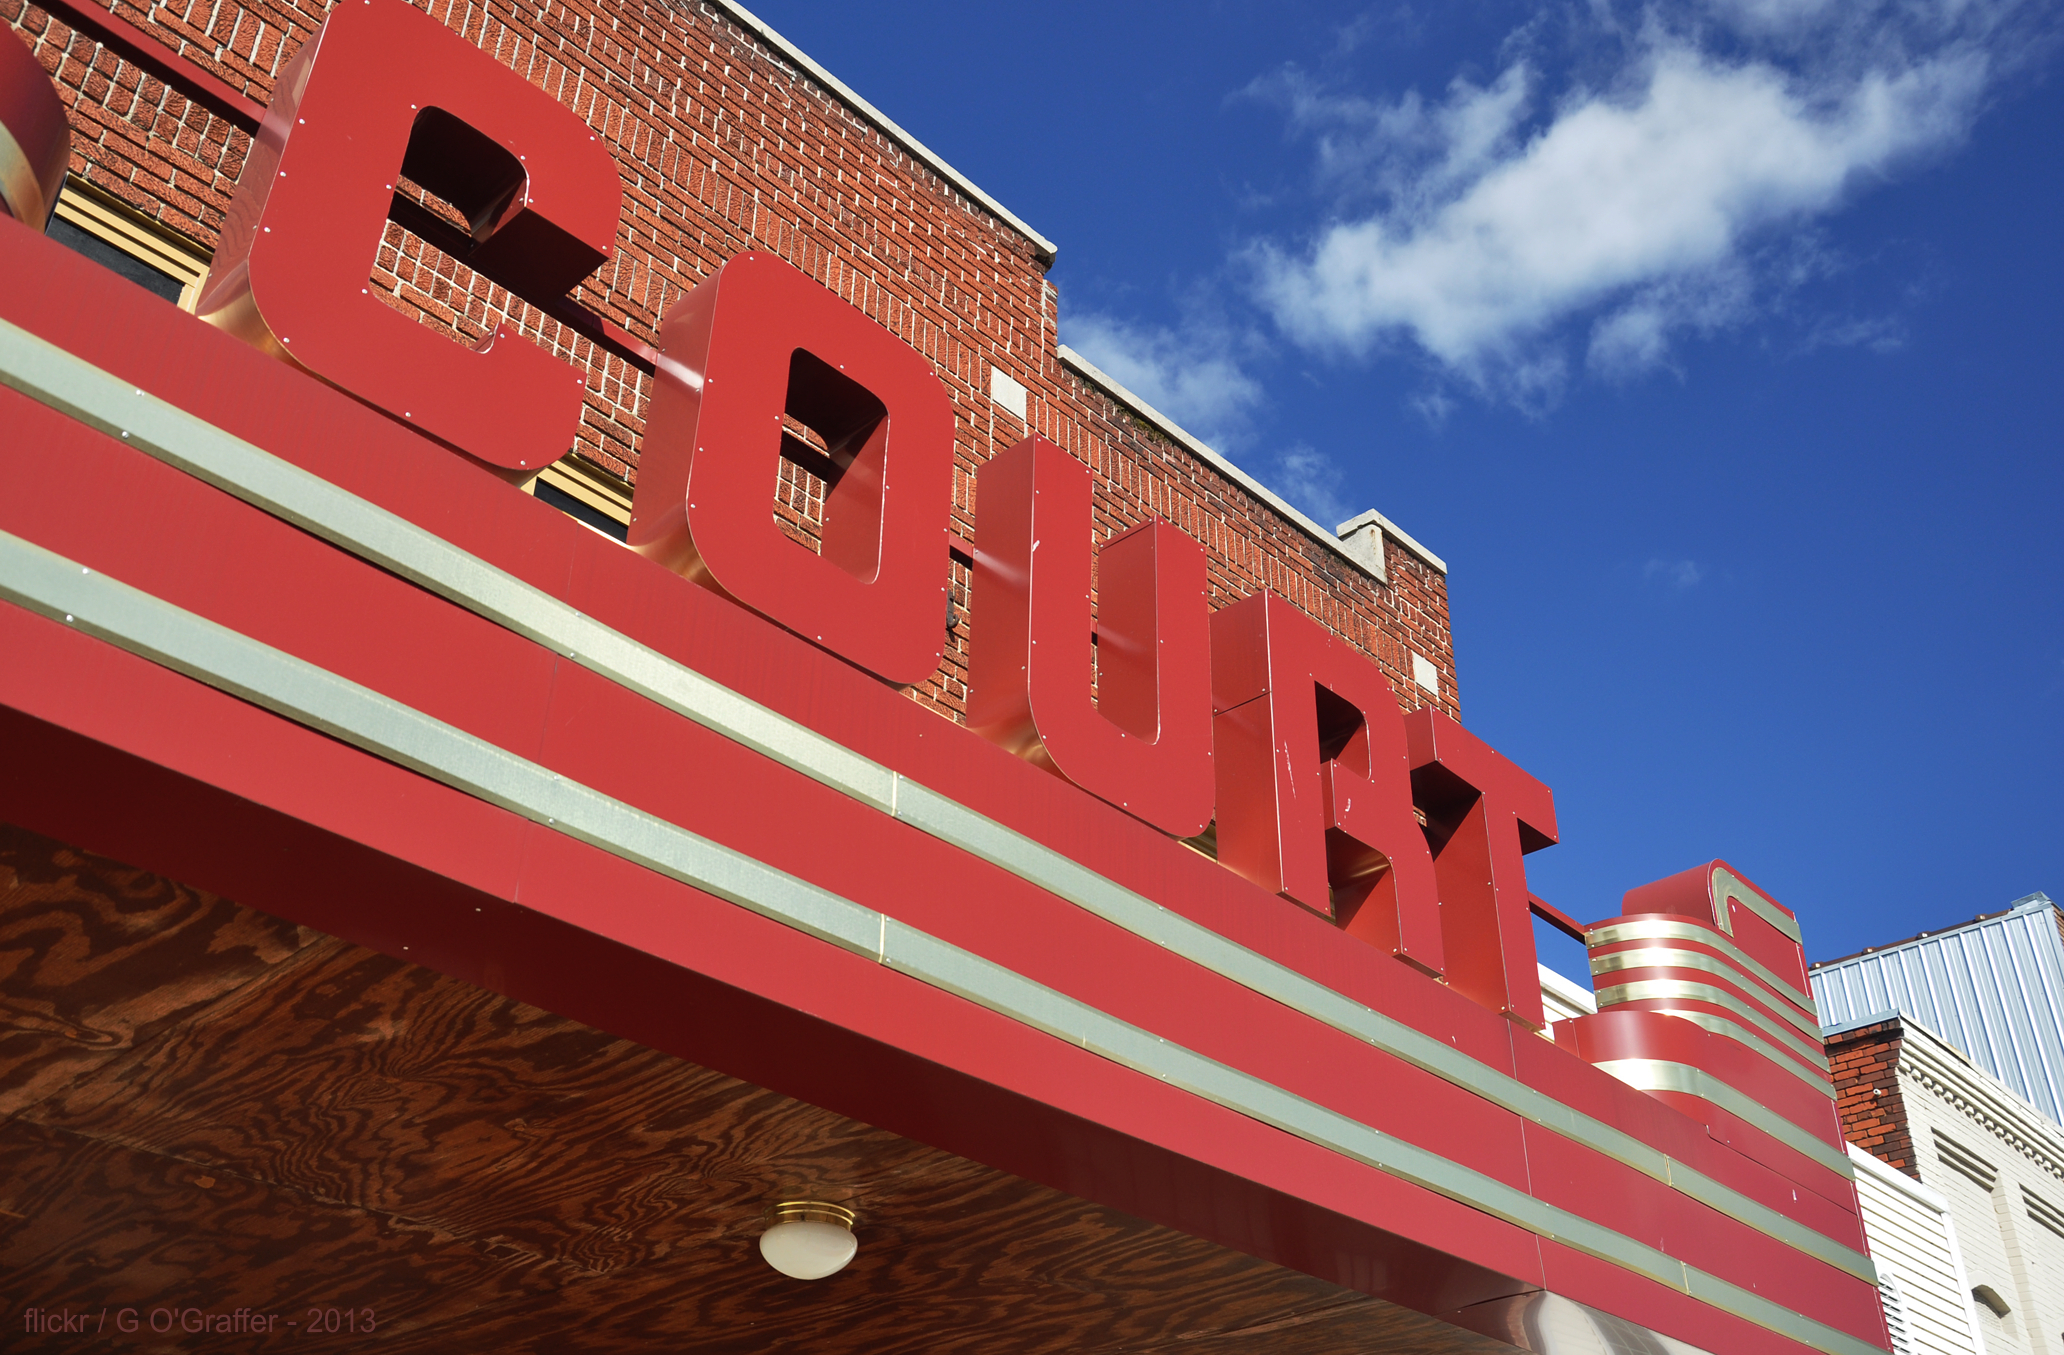 Tennessee carroll county clarksburg - Marquee Tennessee Huntingdon Movietheaters Courtsquare Carrollcounty Oldmovietheaters Courttheatre